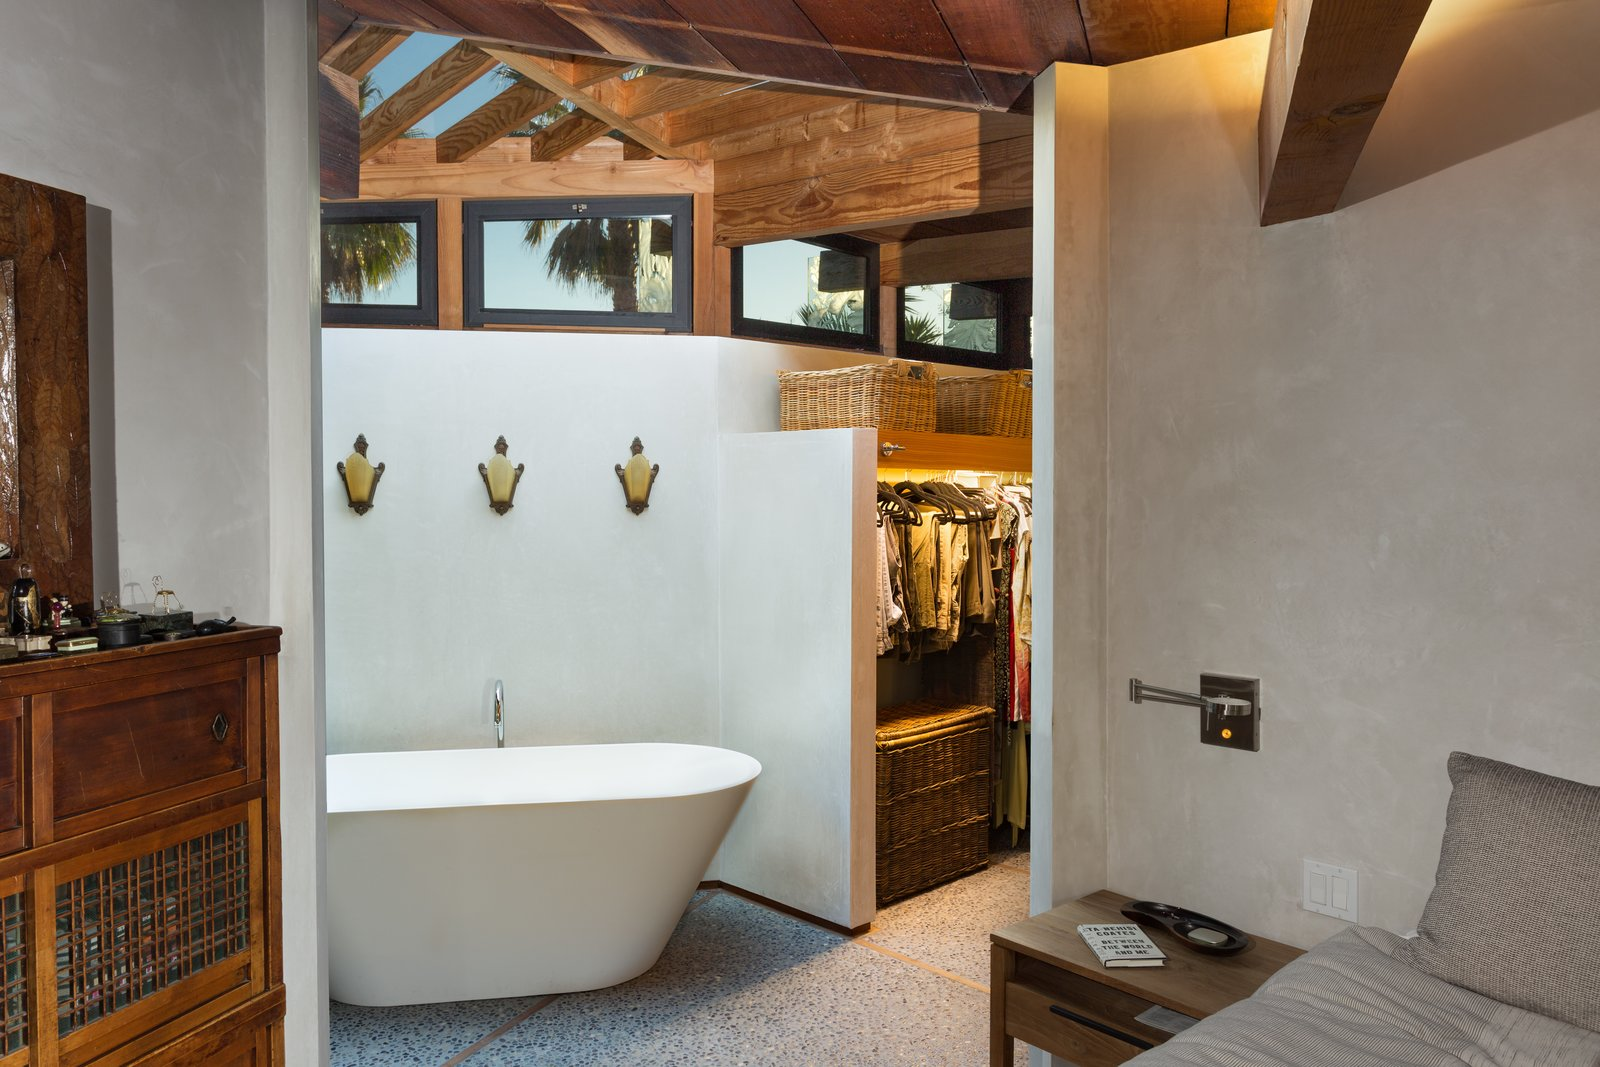 Bath Room, Freestanding Tub, and Concrete Floor  Photo 10 of 13 in A 1974 Masterpiece Is Put on the Market by a Family Friend of the Late Julius Shulman